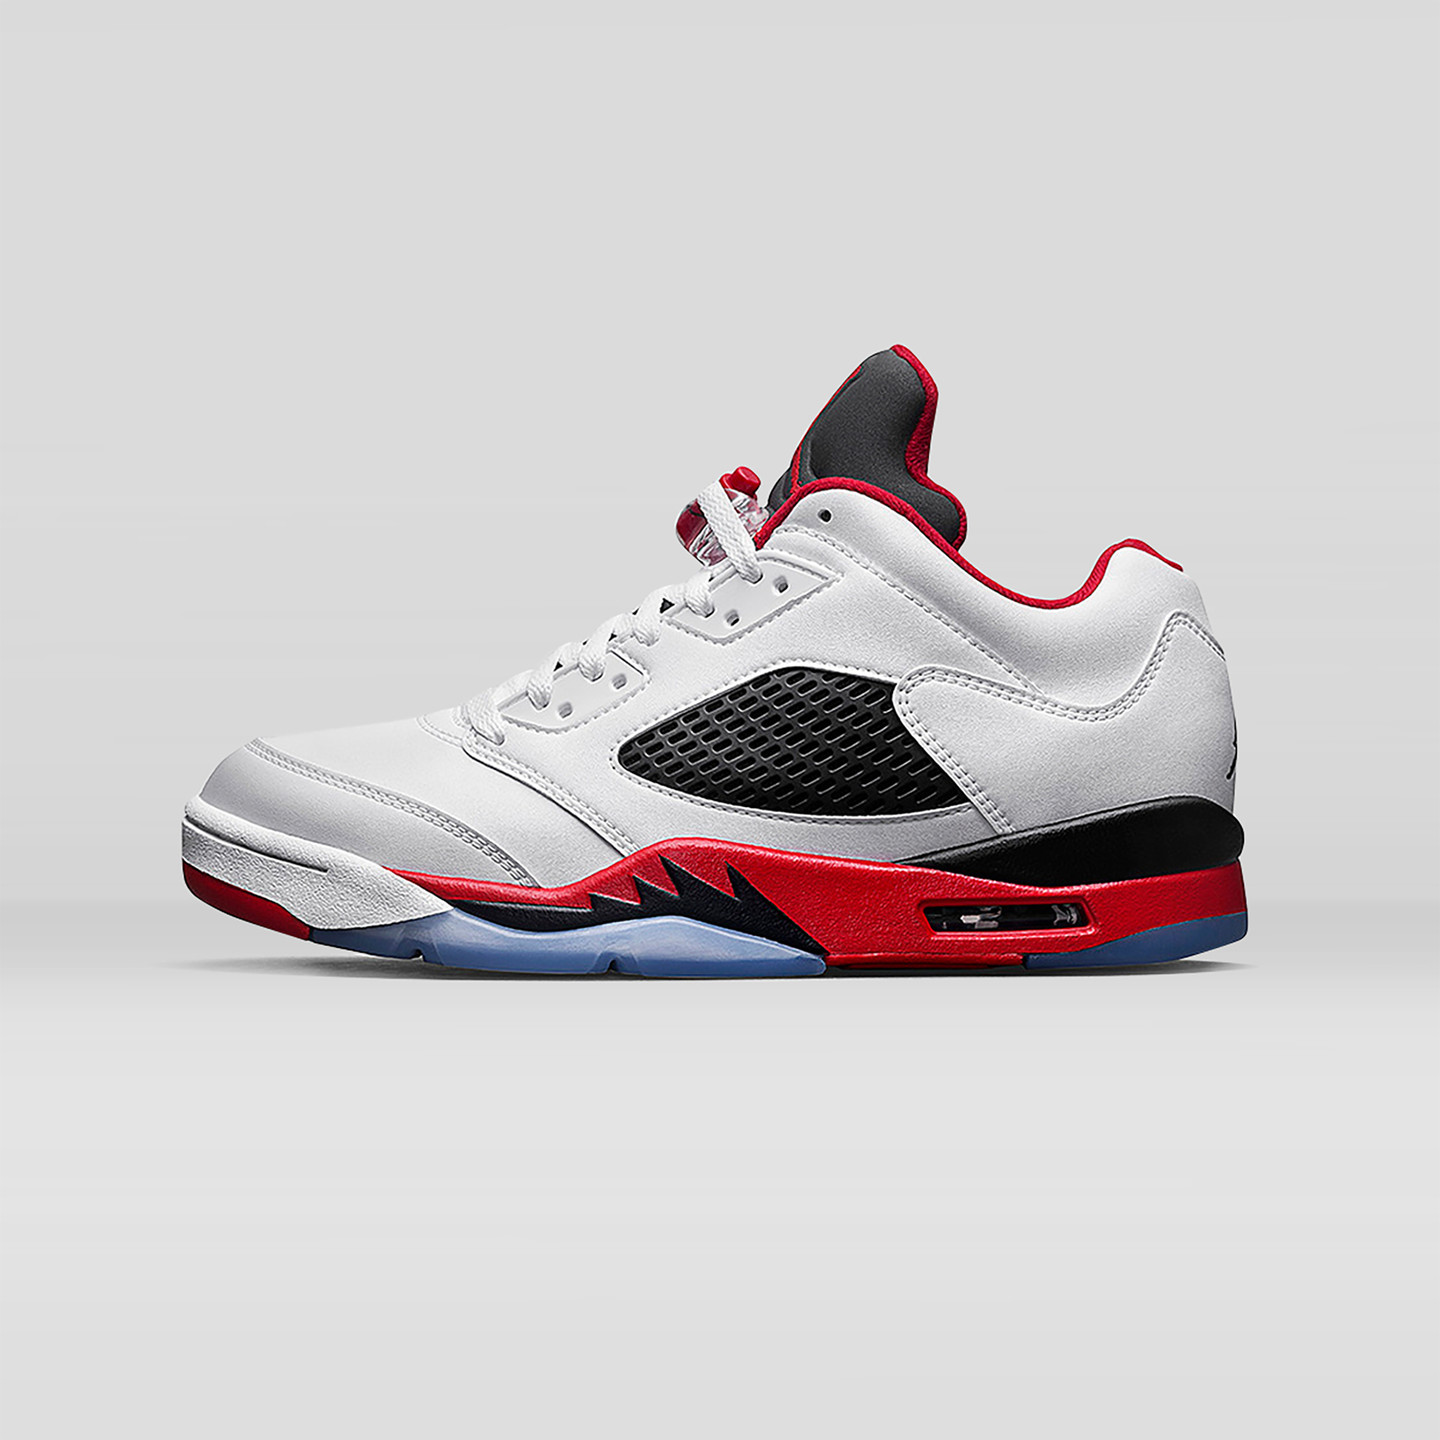 Jordan Air Jordan 5 Low Retro GS 'Fire Red' White / Fire Red / Black 314338-101-37.5